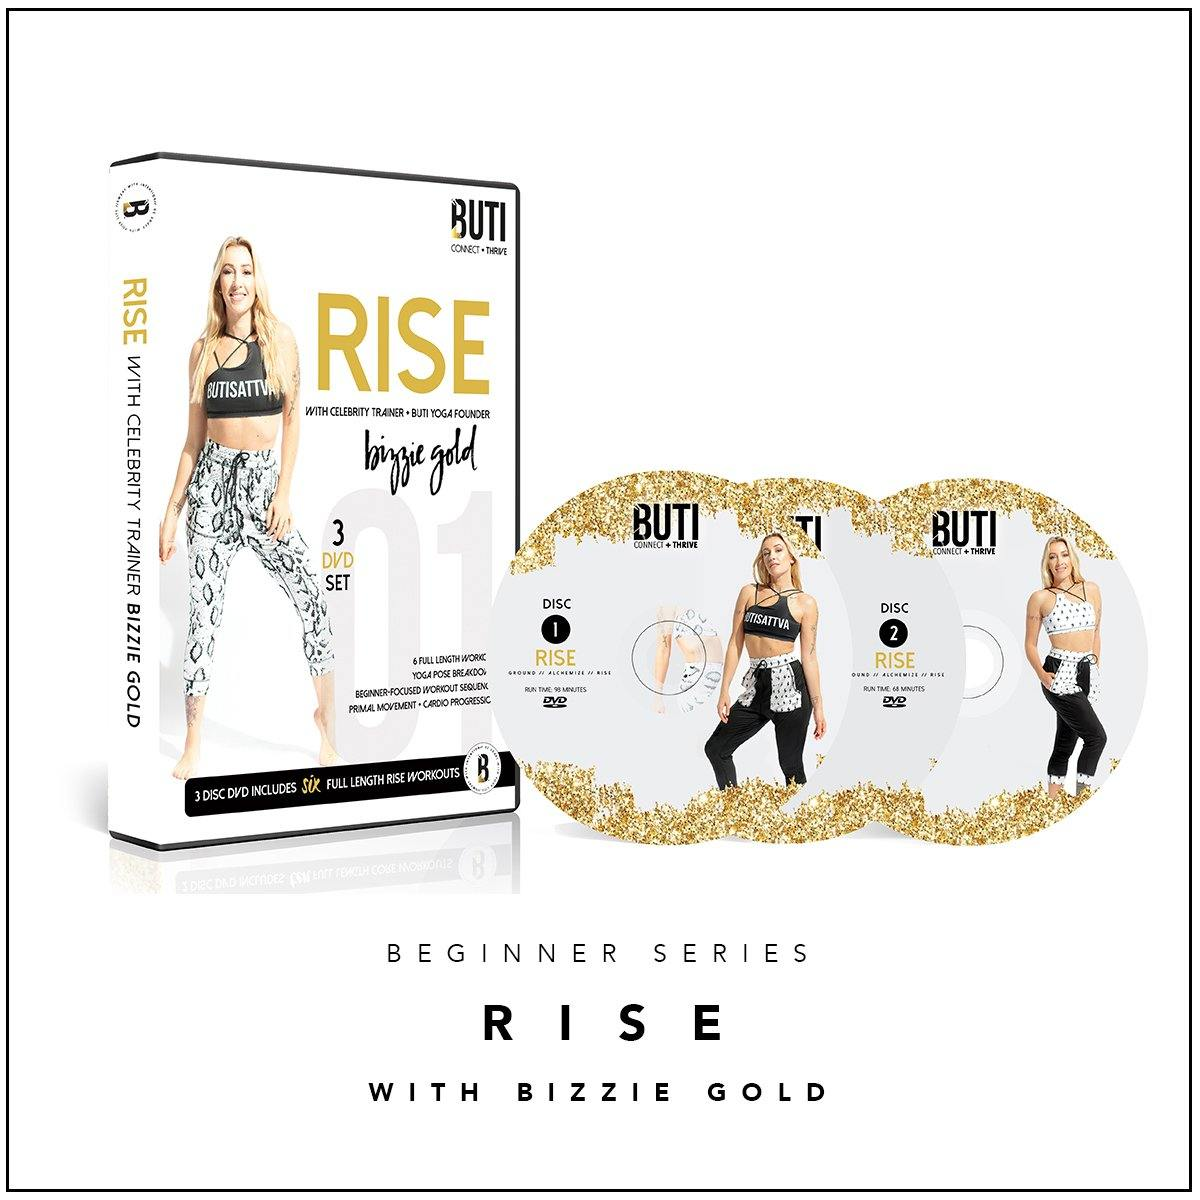 RISE - Beginner Series with Bizzie Gold